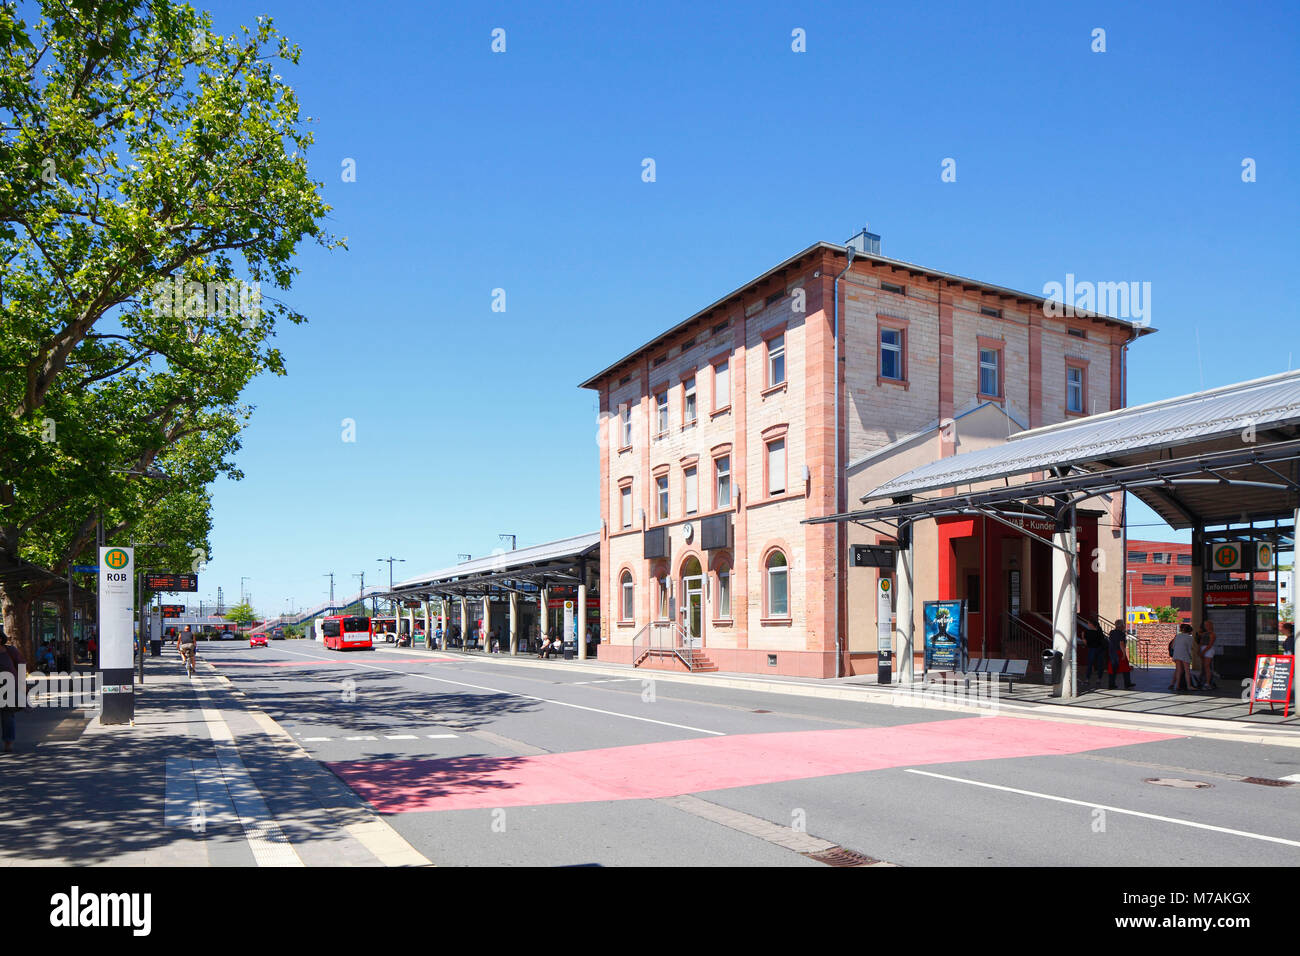 bus stop germany stock photos bus stop germany stock images alamy. Black Bedroom Furniture Sets. Home Design Ideas